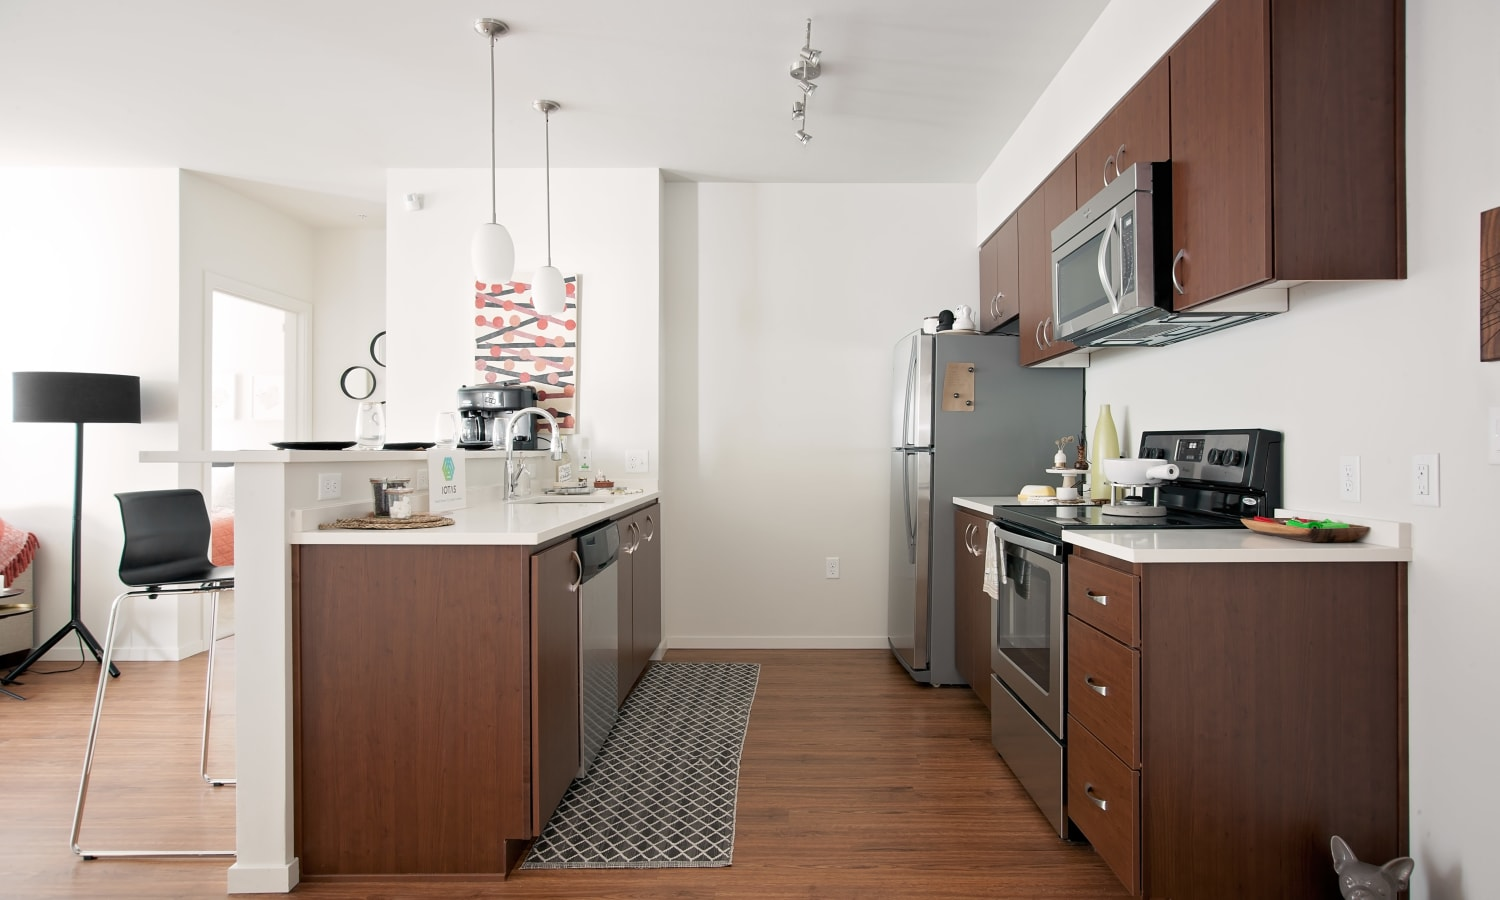 Modern and bright kitchen at Grant Park Village in Portland, OR